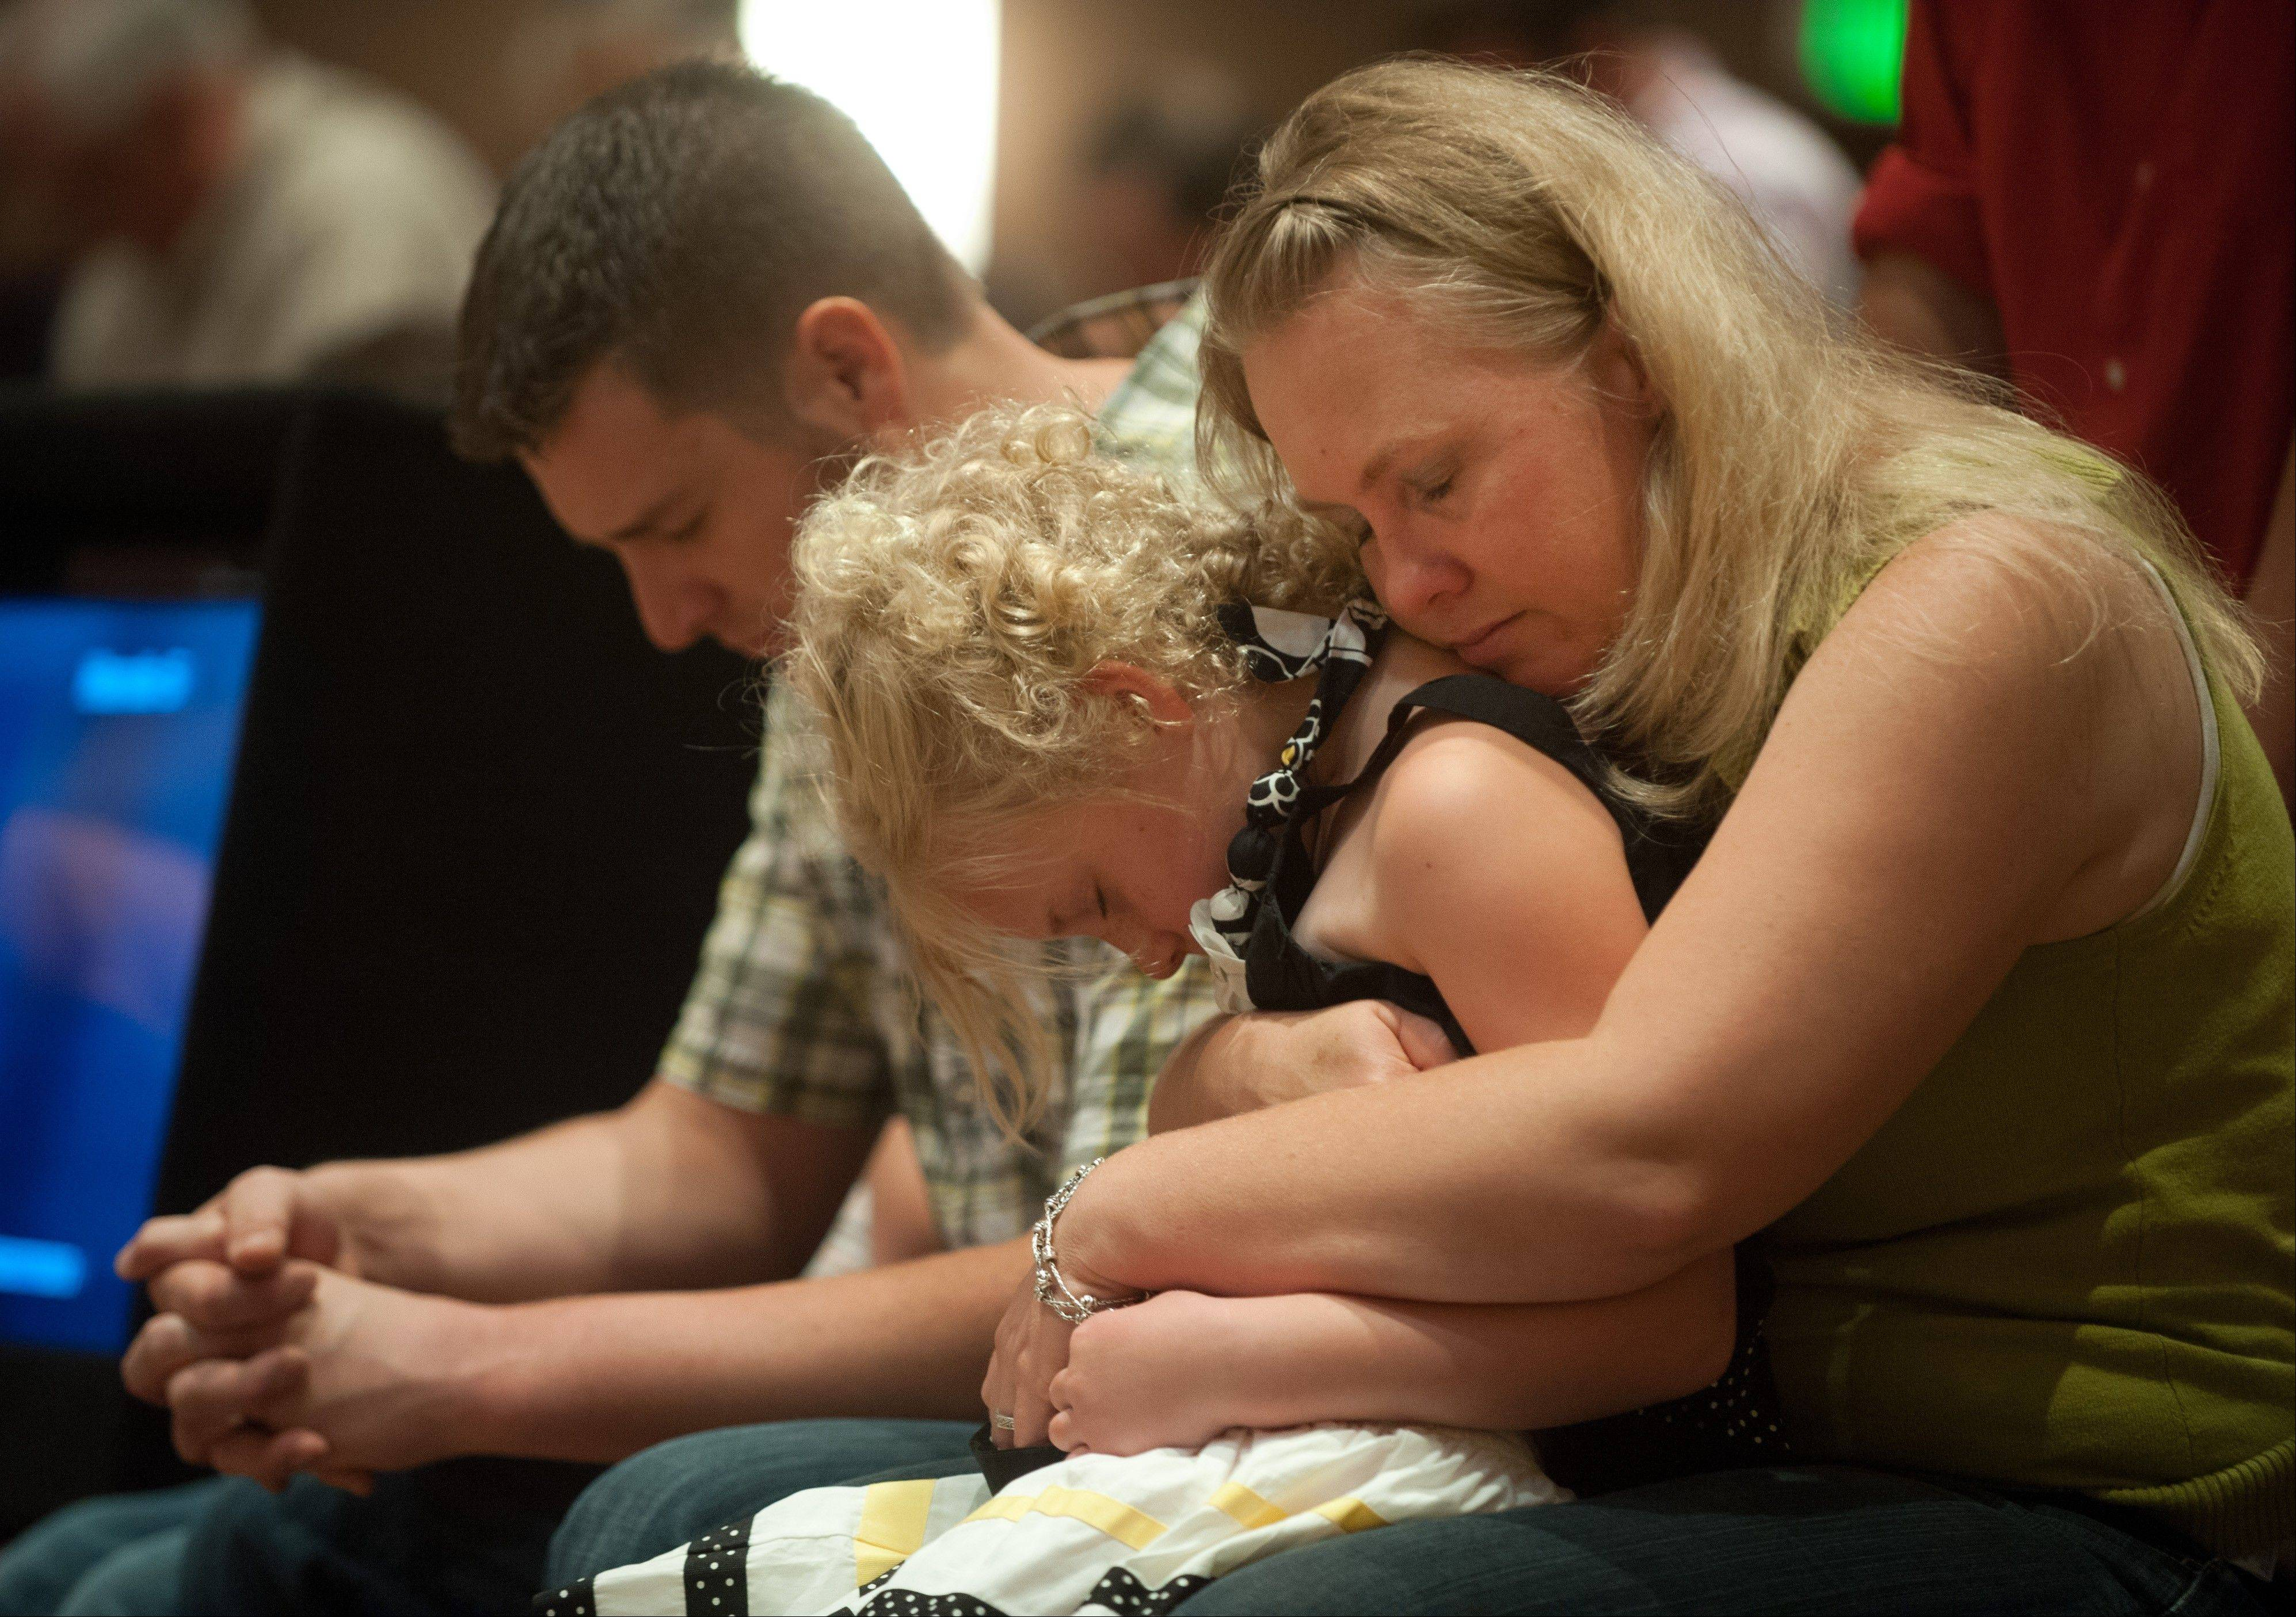 Lara Stern, right, prays with her daughter, Alana, 8, and husband, Samuel Stern, Sunday during a community prayer and praise worship service at First Baptist Church on Black Forest Road northeast of Colorado Springs, Colo. The Stern family and at least 10 other families at the church lost their homes to the Black Forest fire.